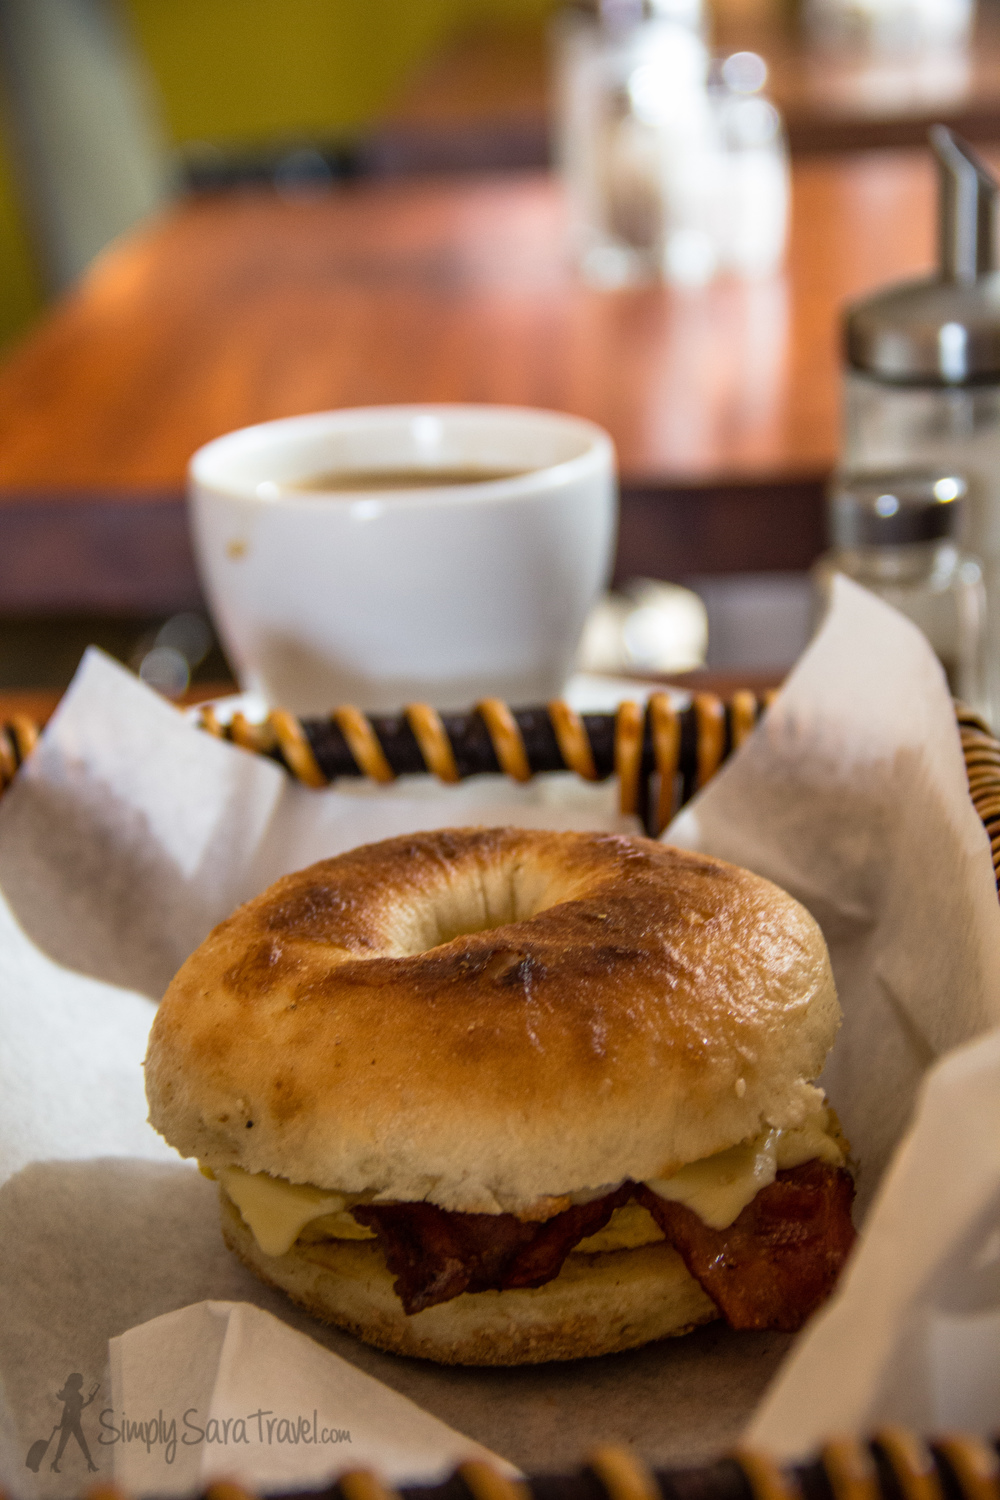 Meet the best breakfast sandwich in Europe to-date: bacon, egg, and Gouda cheese on a toasted bagel. Oh, and that's a mug of filtered coffee in the back. Photo taken before the free coffee refill. Did I mention I love this place?